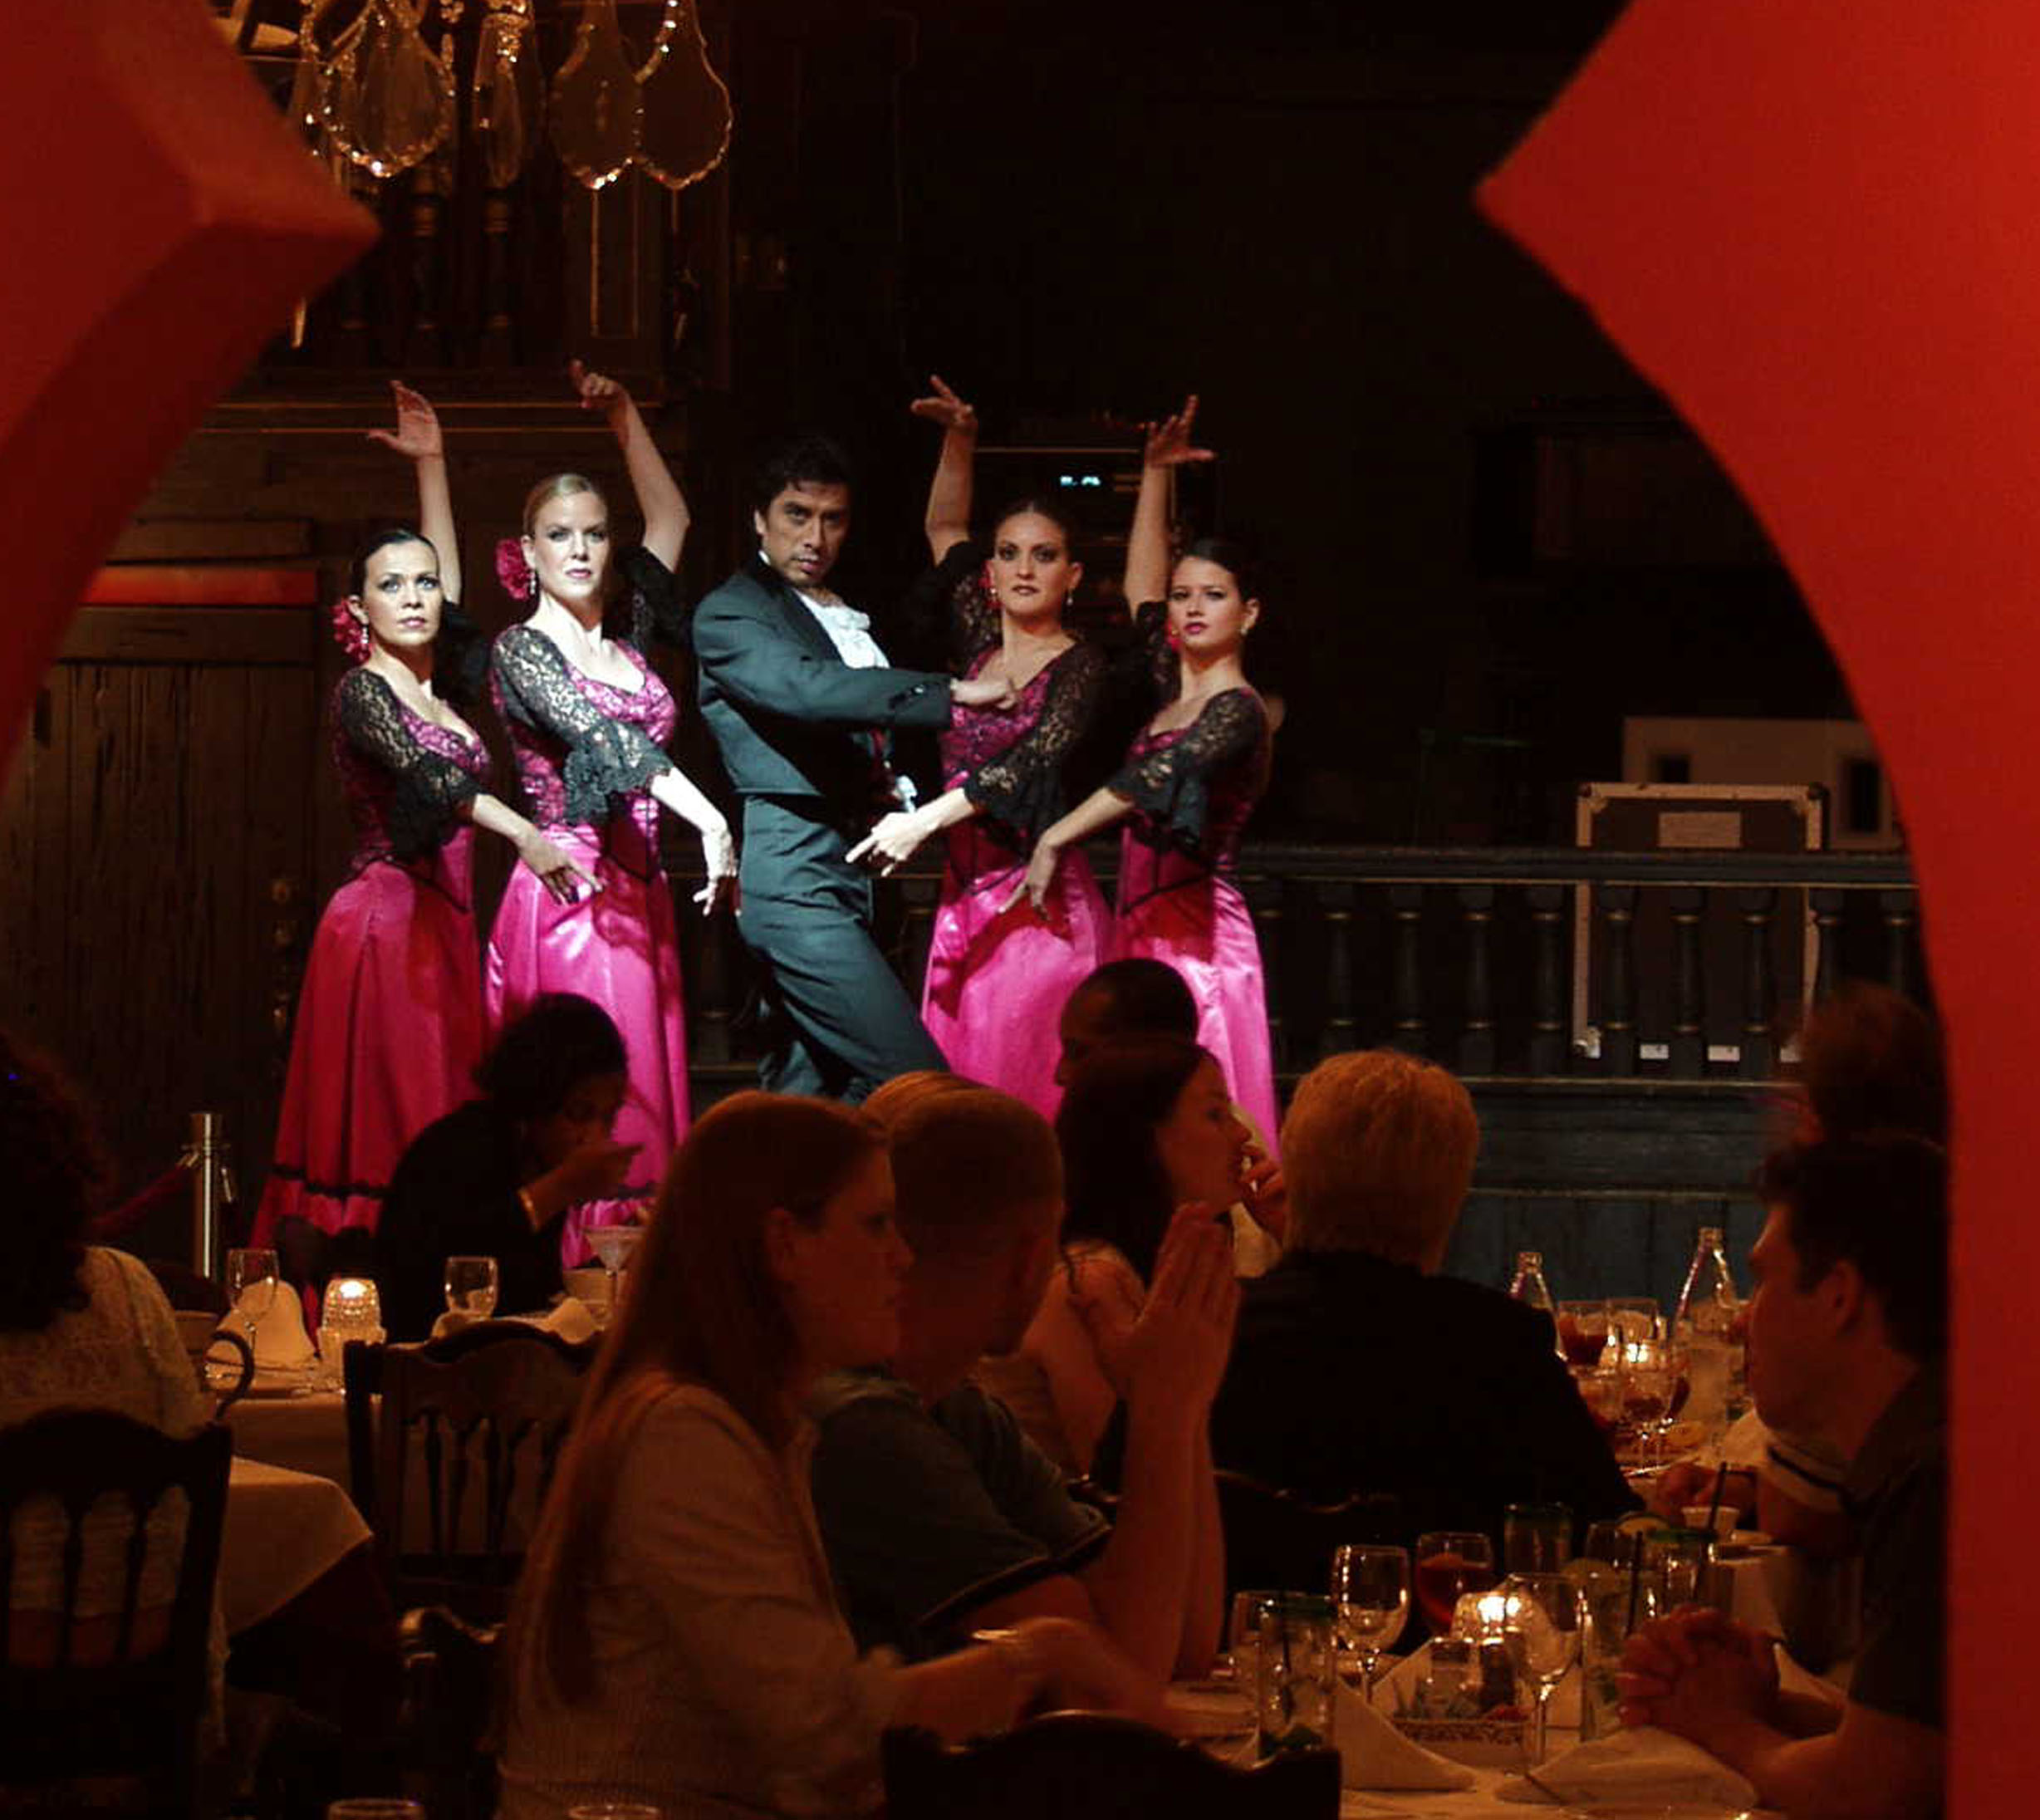 Flamenco dancers perform at the museum